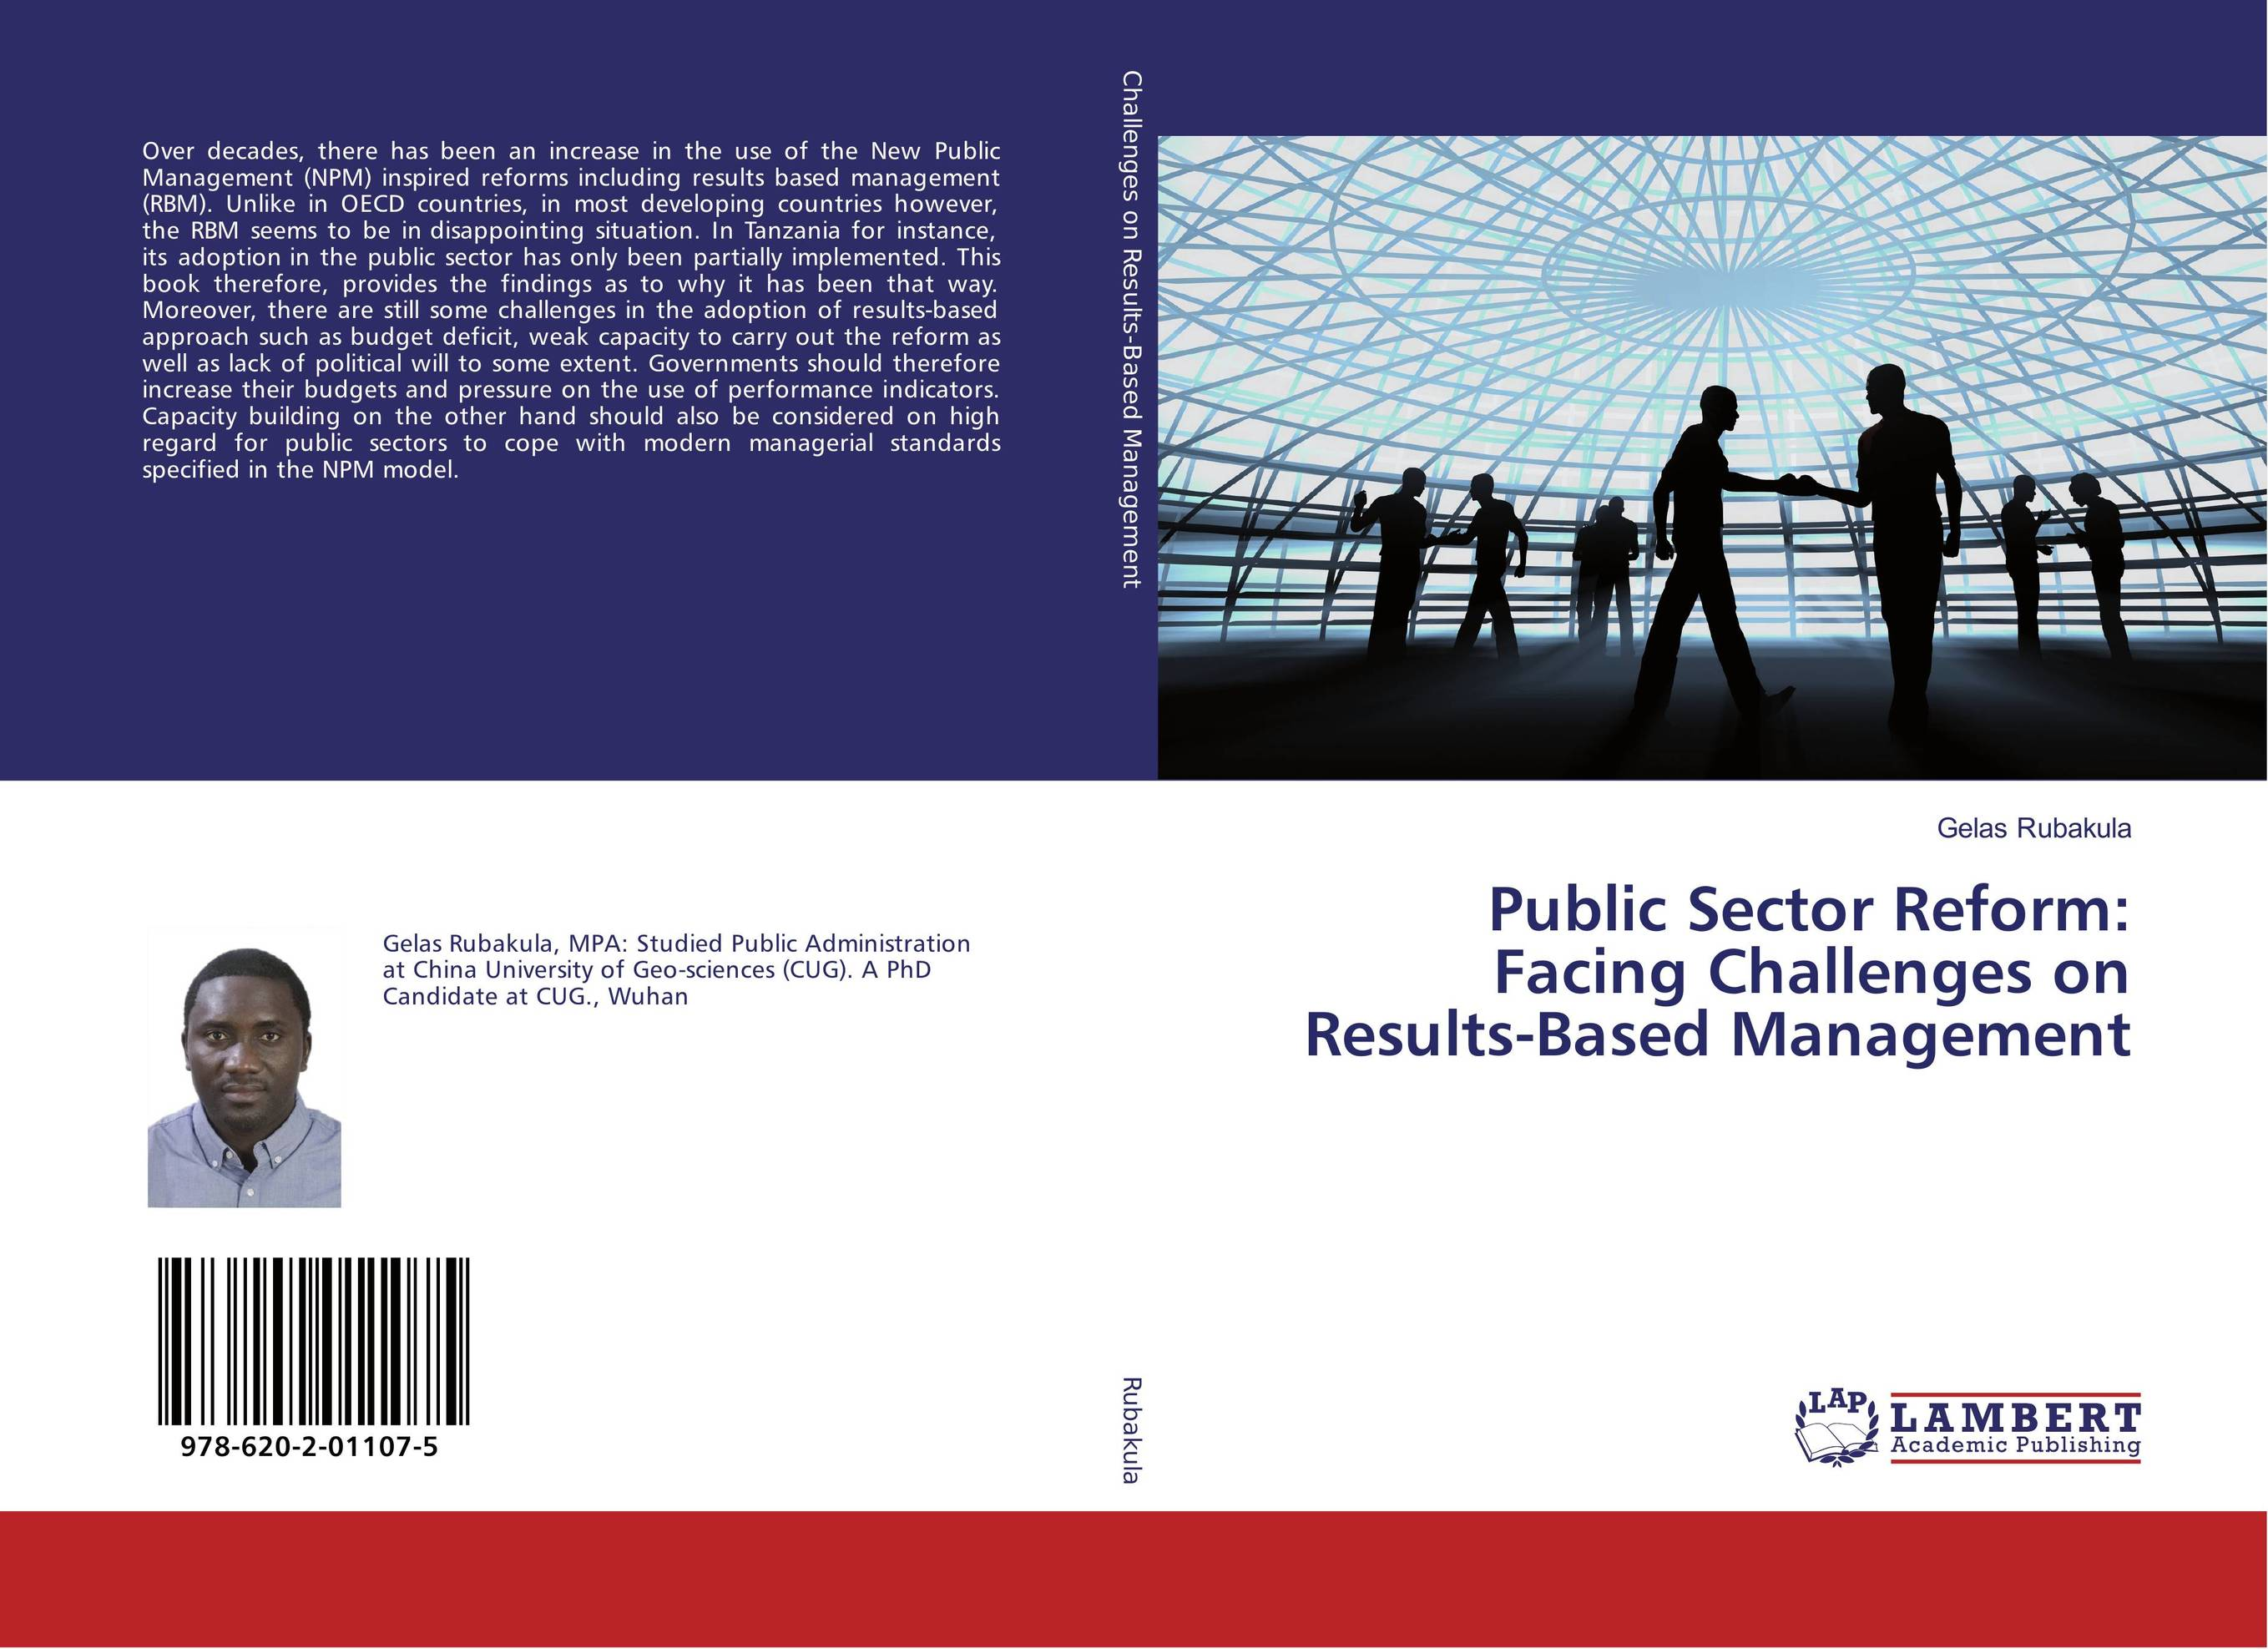 the new public management approach to regulations Practical and effective project management has its roots in simplicity keeping it simple makes stakeholders to have clear expectations & measure results by being effective here is a 6 steps approach to do effective project management for your organization and drive better results.